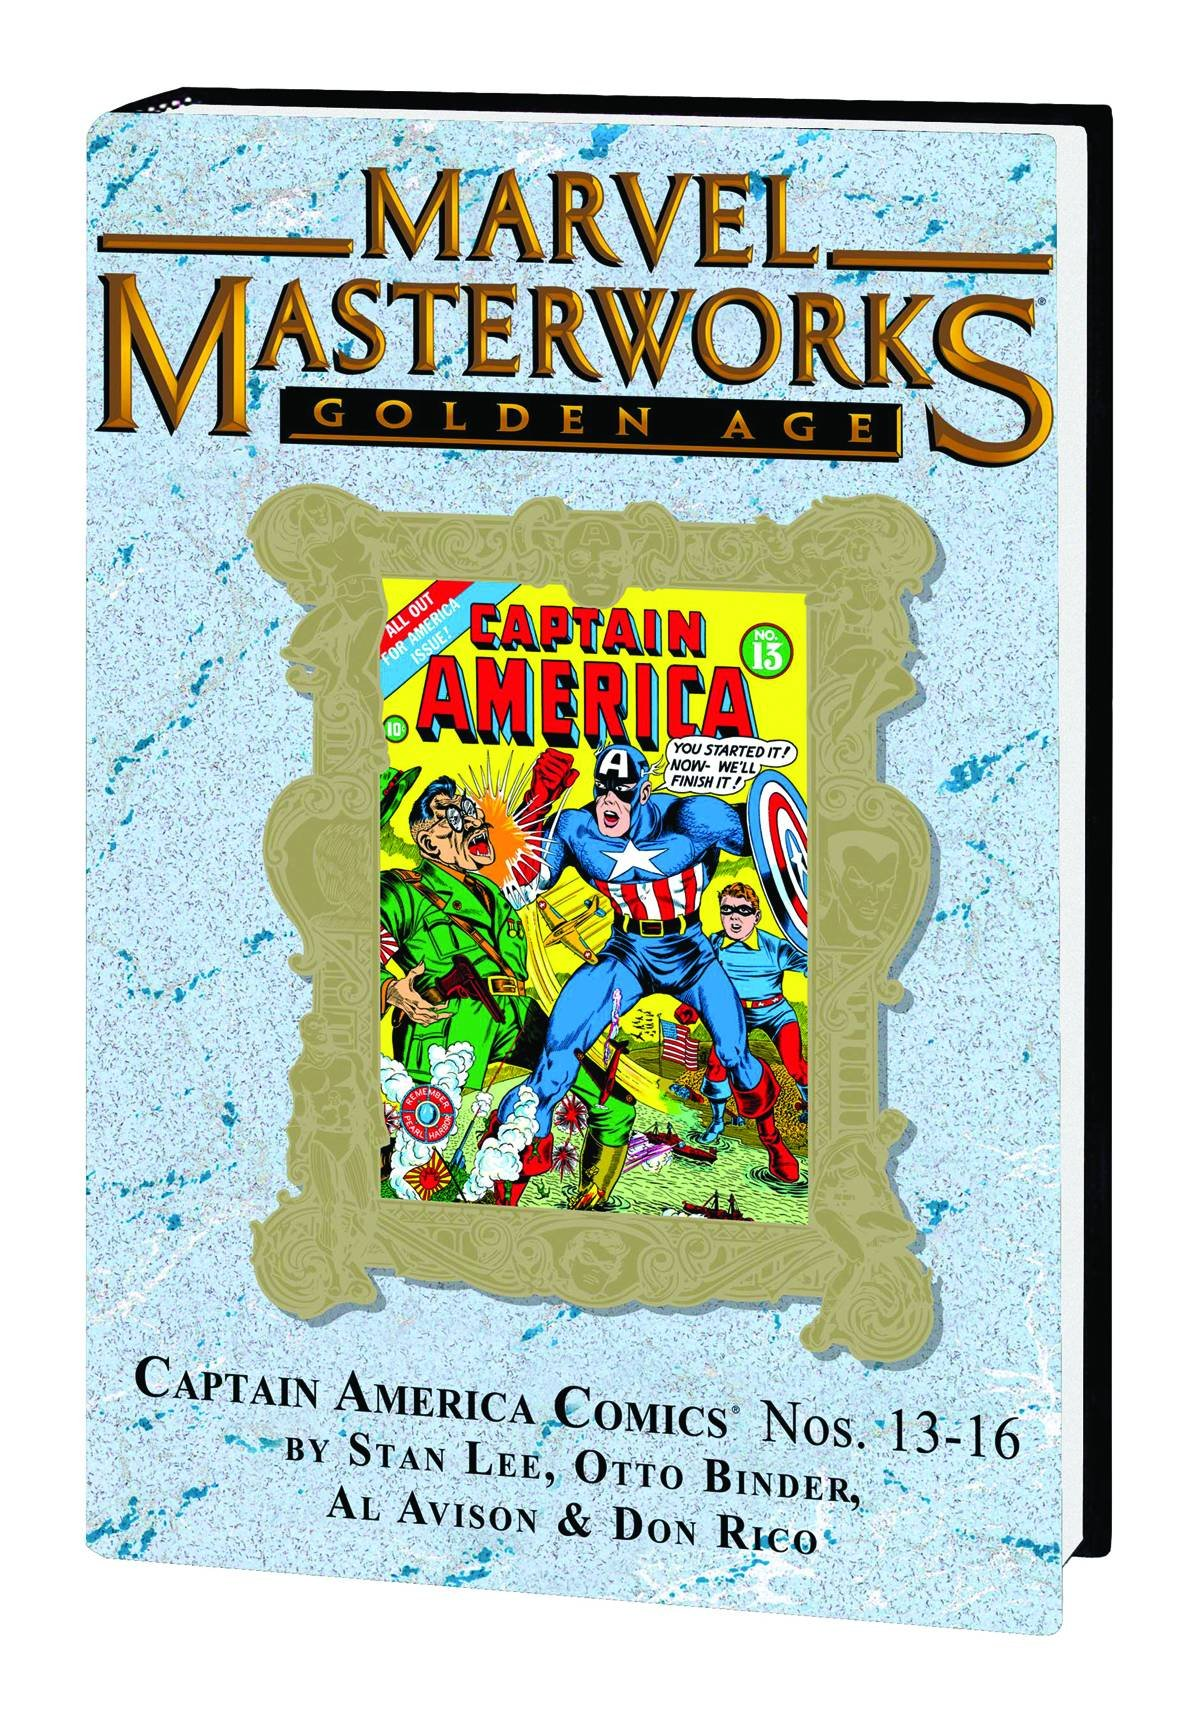 Download Marvel Masterworks Golden Age: Captain America No. 13 - 16 ebook